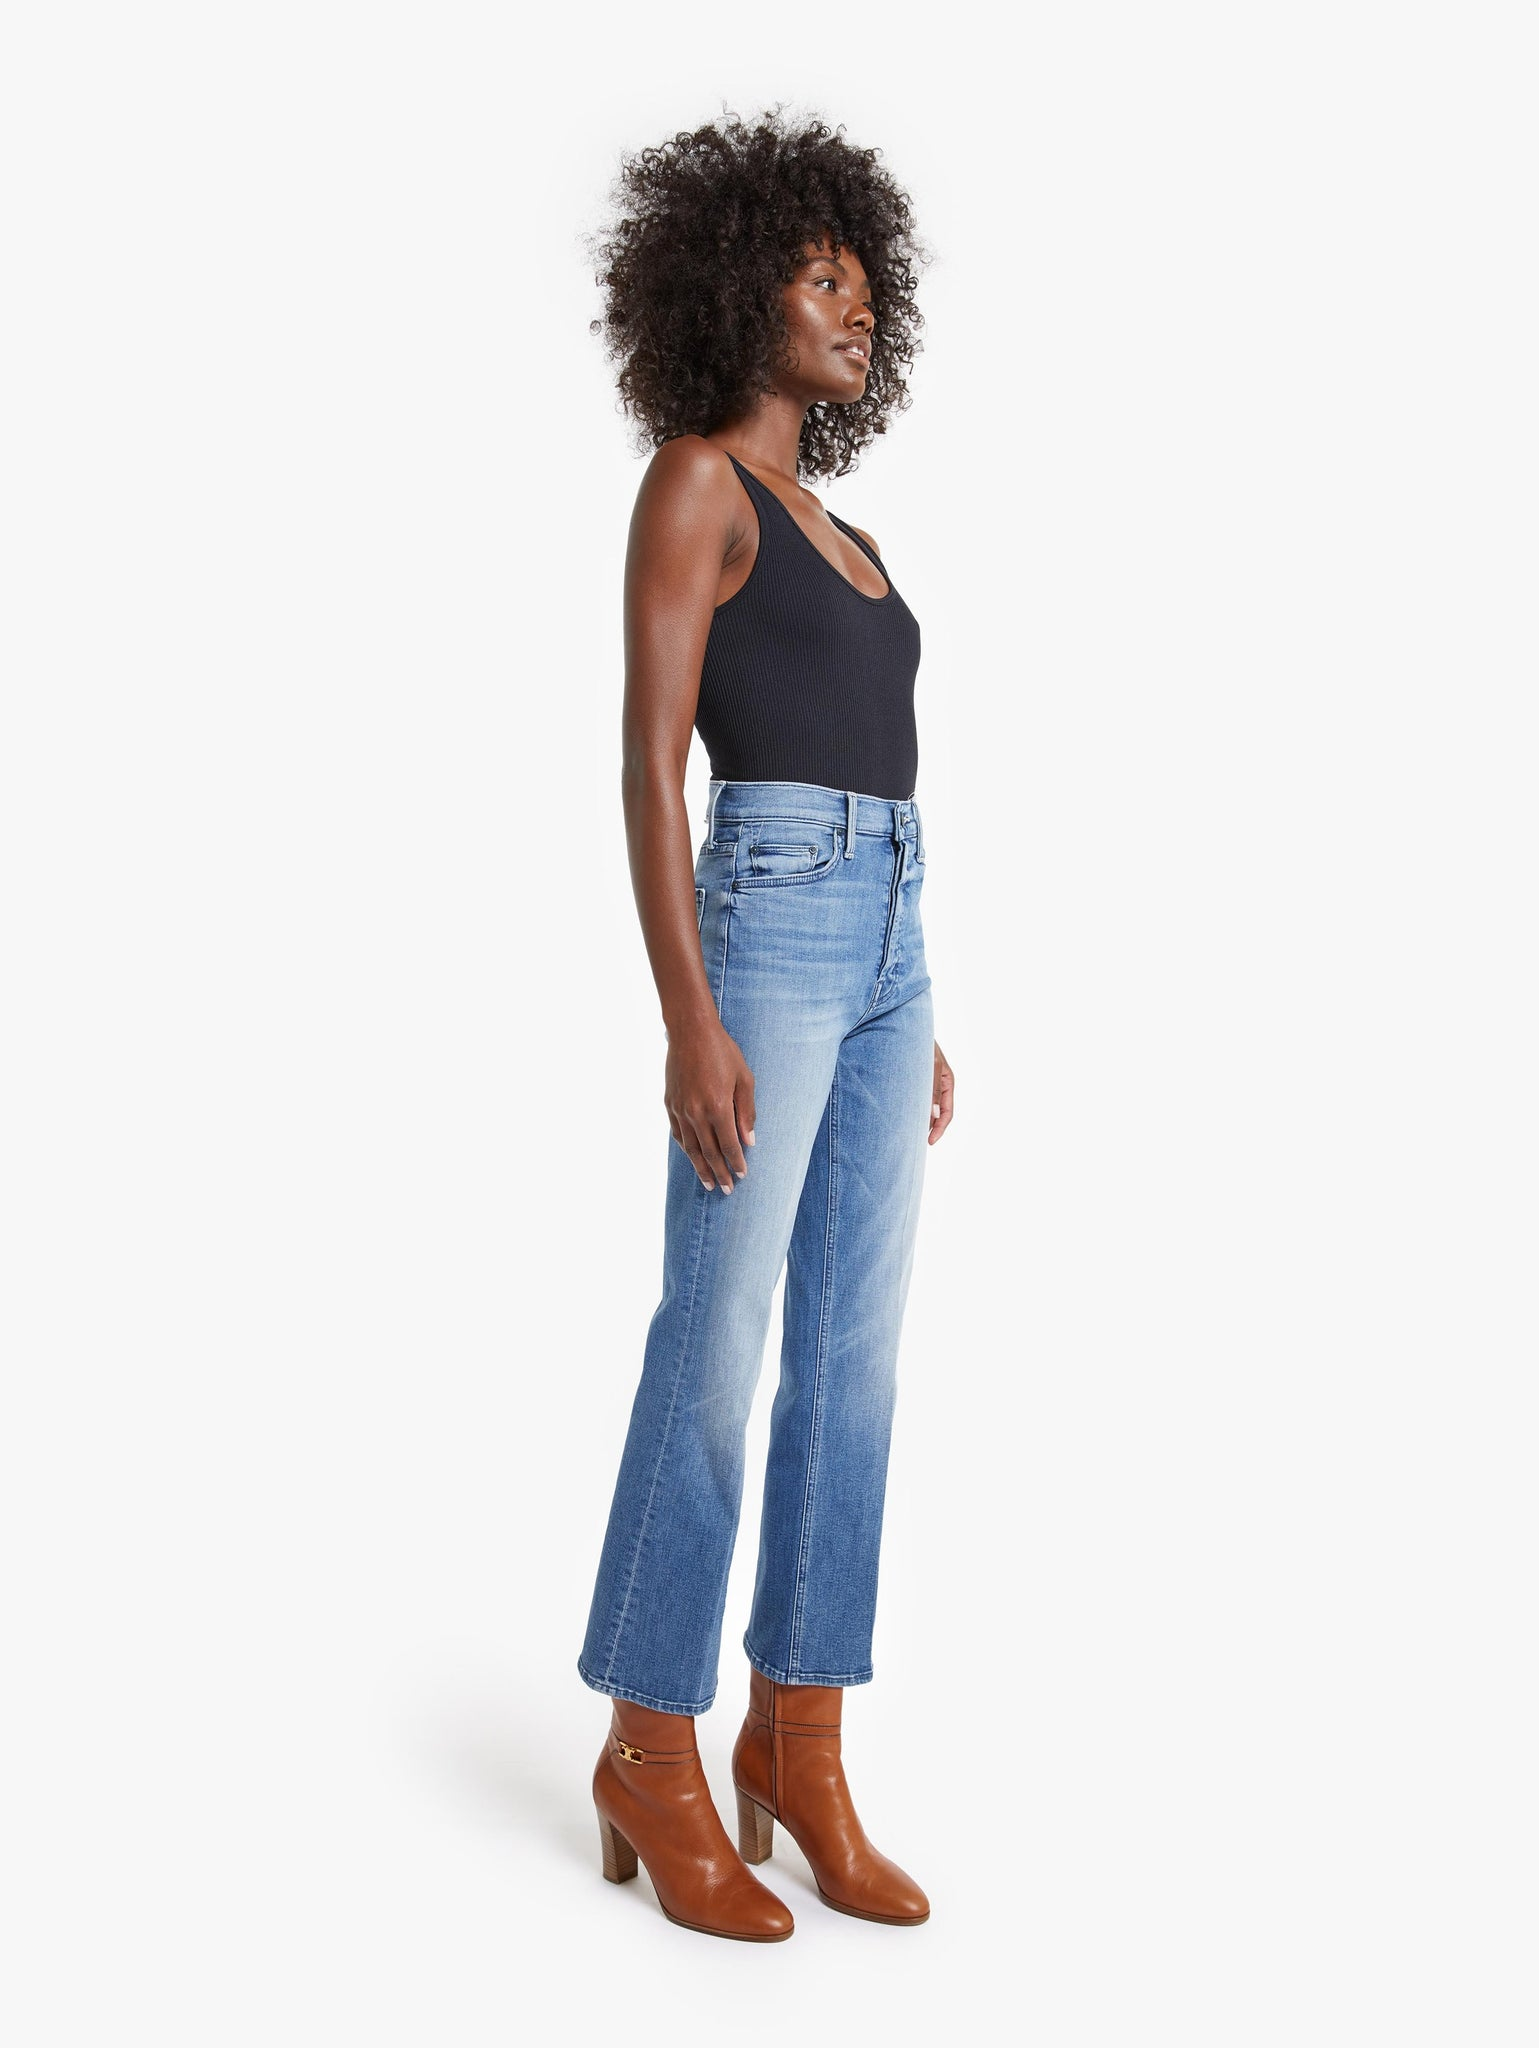 Edwards Imports Ltd Womens Jeans Mother | The Tripper Ankle - We The Animals